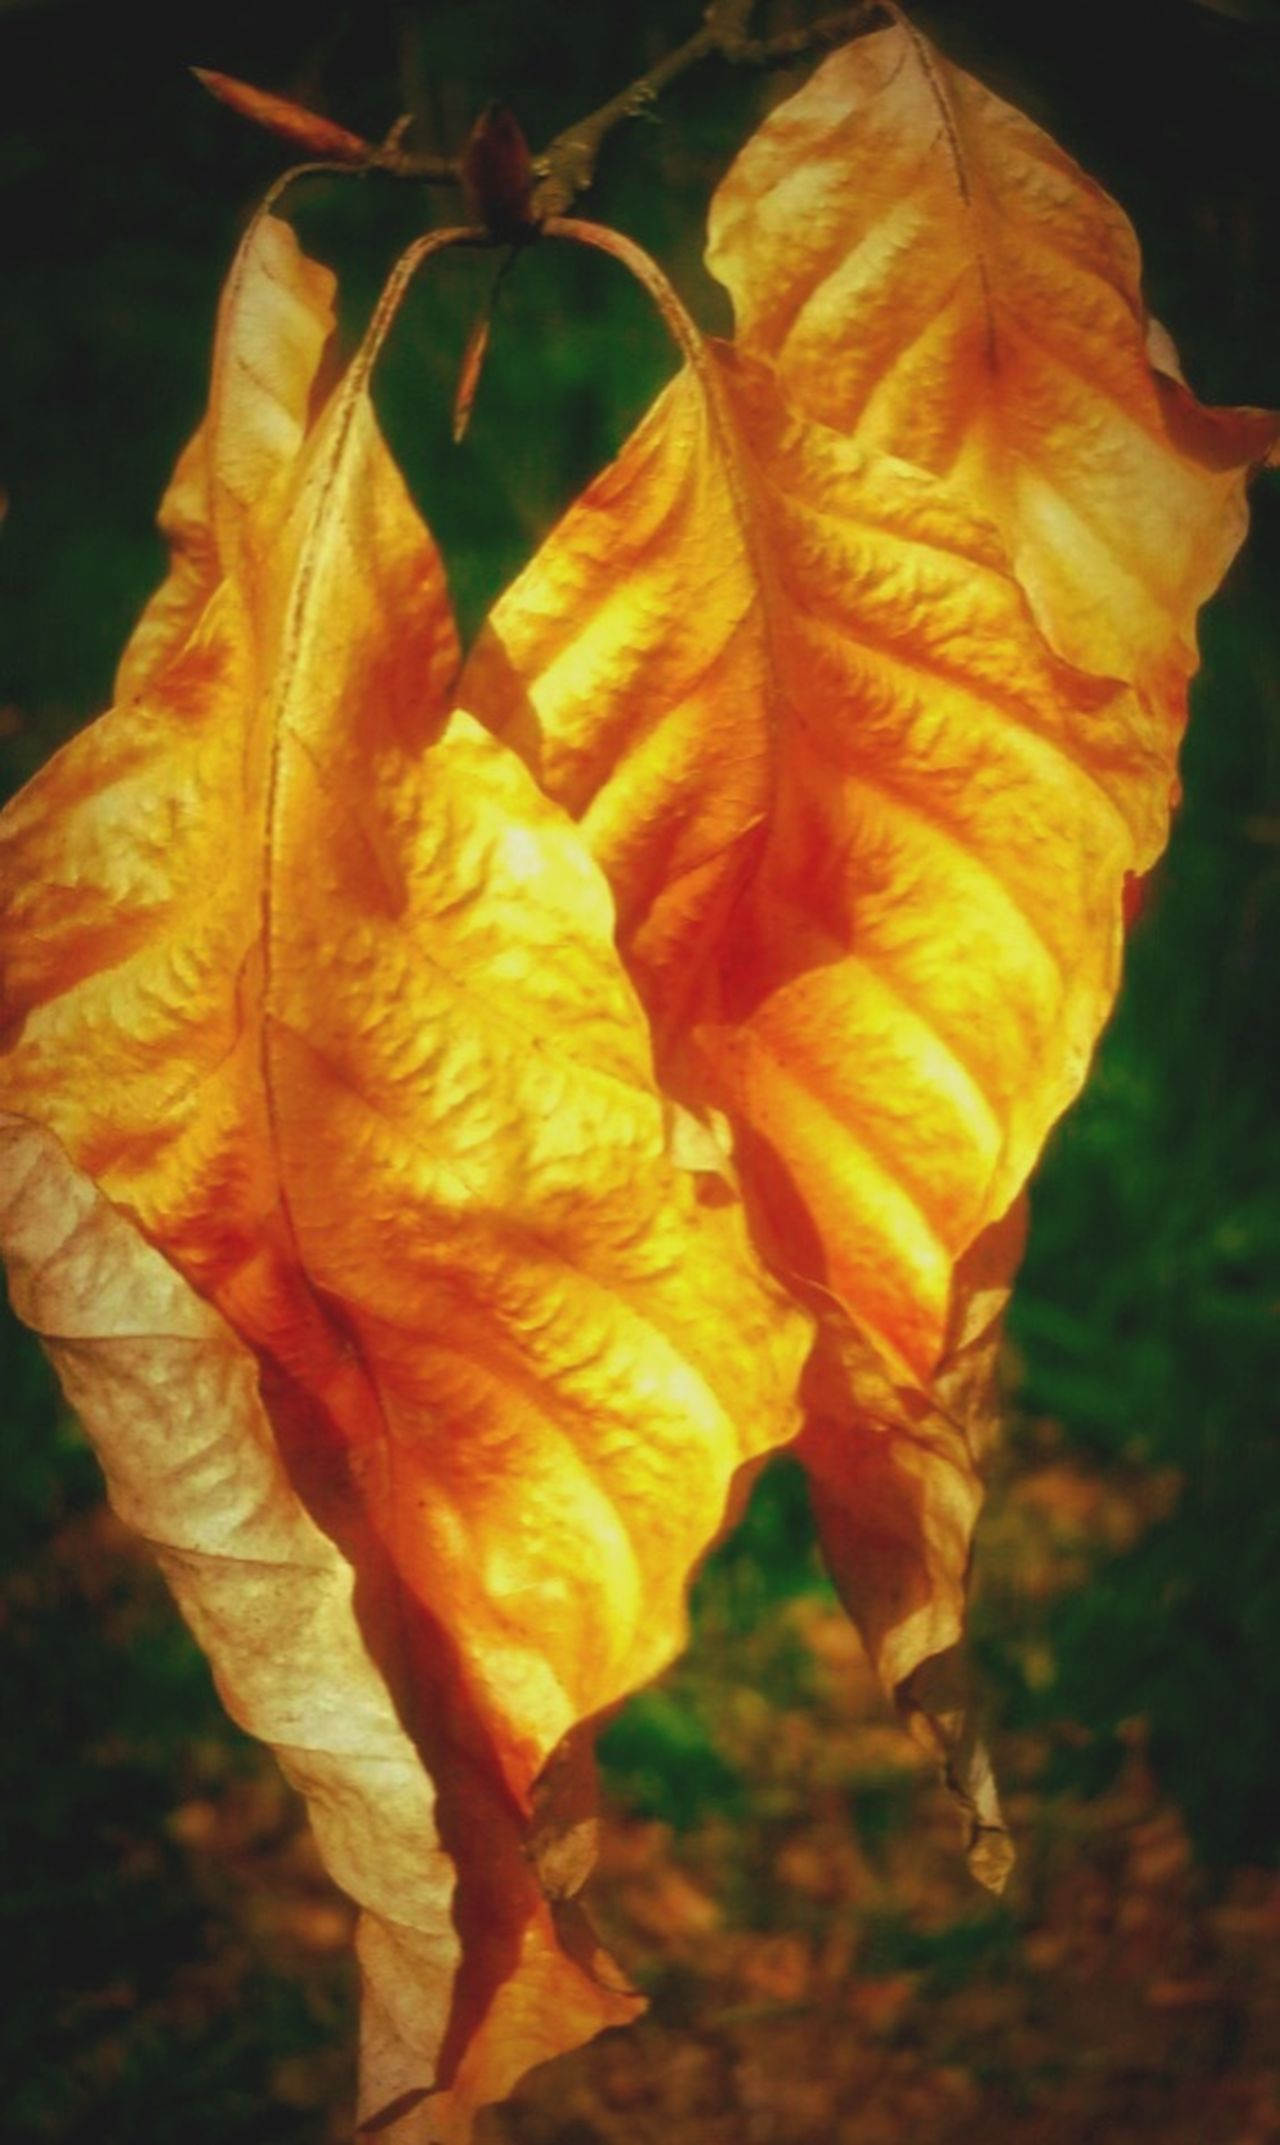 Autumn Leaves Autumnal Leaves Autumn🍁🍁🍁 Autumn Collection Beauty In Nature Nature Fragility Close-up Autumn Colours Crisp Leaves Golden Leaf Golden Leaves Fall Colours Fall Leaves Fall Leaves On Tree